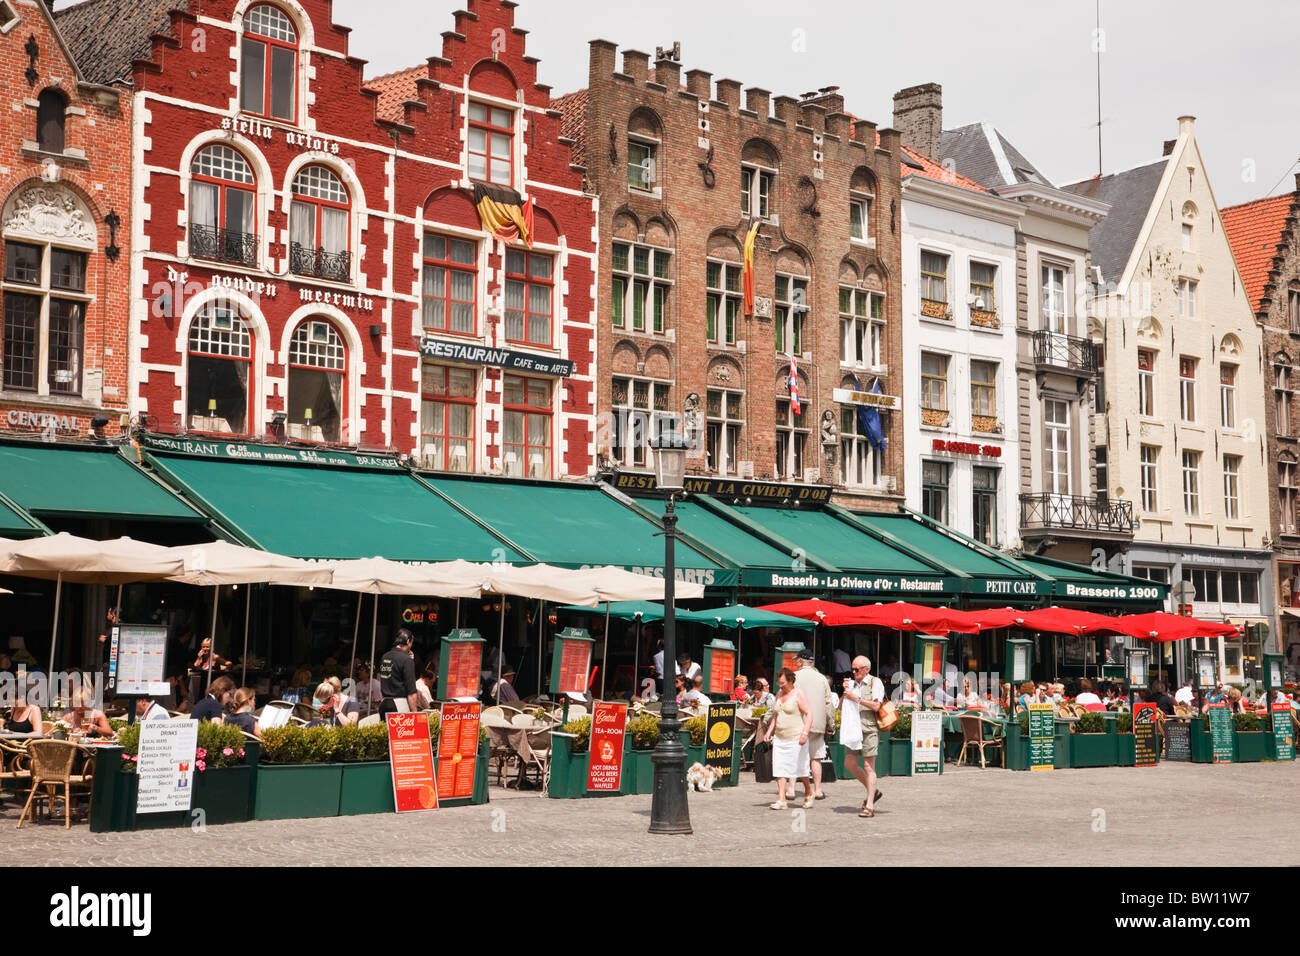 Markt, Bruges, Belgium, Europe. People dining in outdoor cafes around the historic square - Stock Image